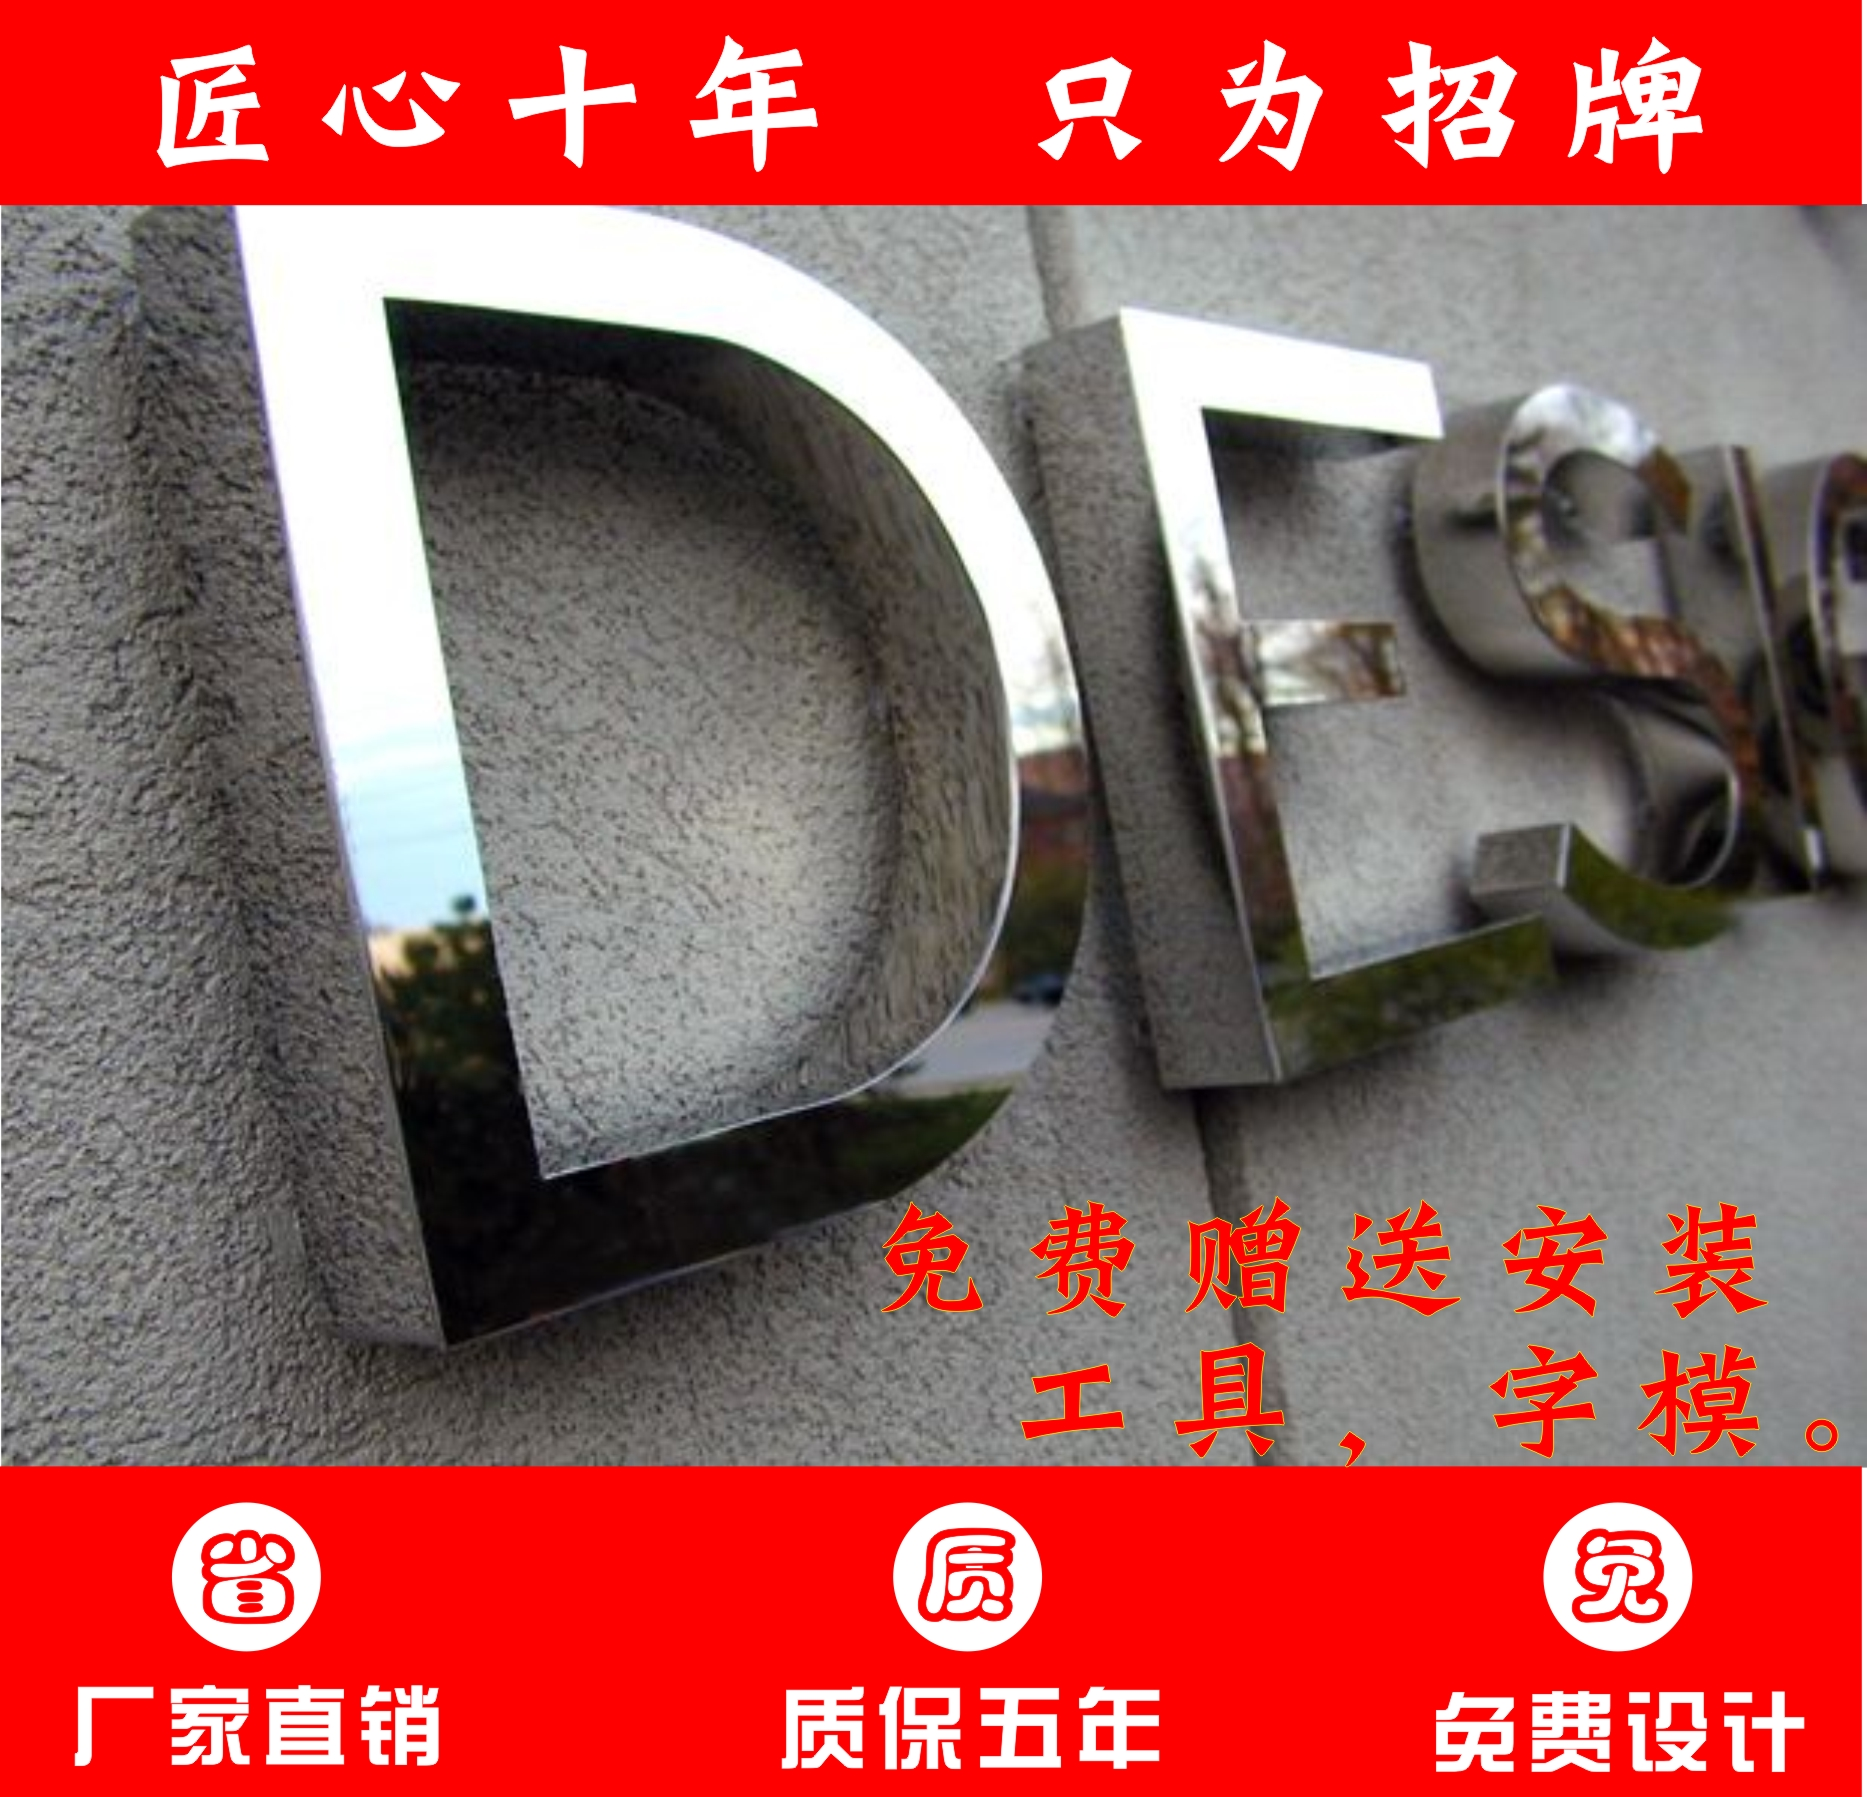 Exquisite stainless steel word drawing, Seiko word baking paint character wall logo production, background wall word, metal word custom made